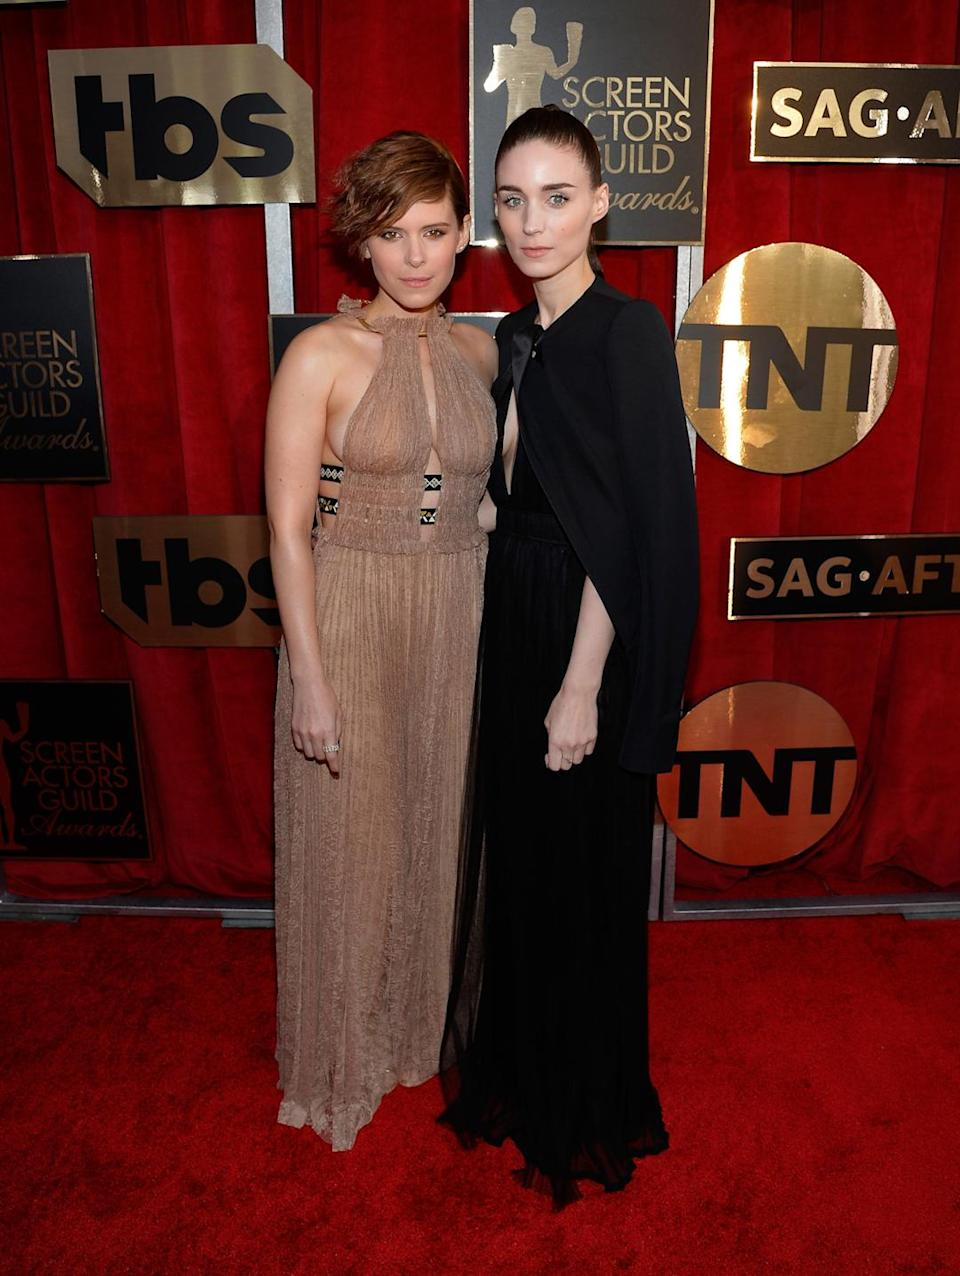 <p>Sisters Kate and Rooney Mara both coincidentally wore Valentino. The sisters who dress together, slay together! <i>Photo: Getty Images</i></p>